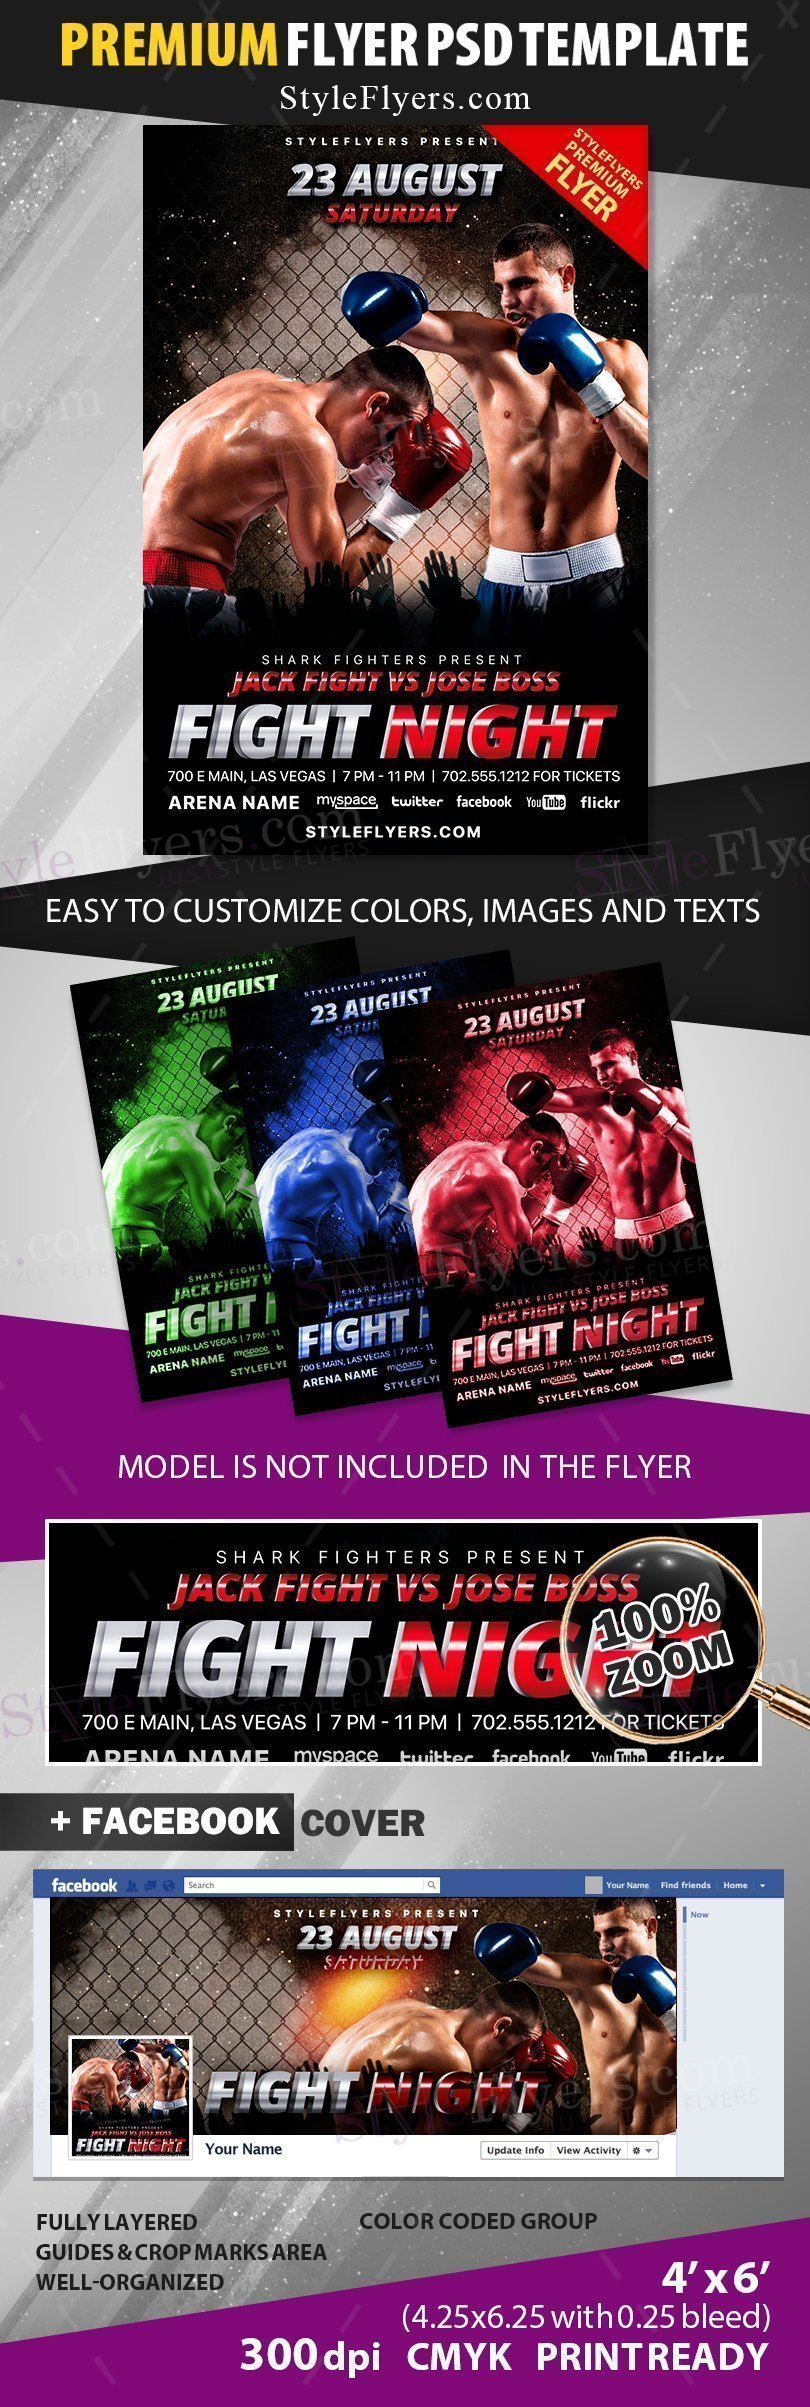 preview_fight-night_psd_flyer